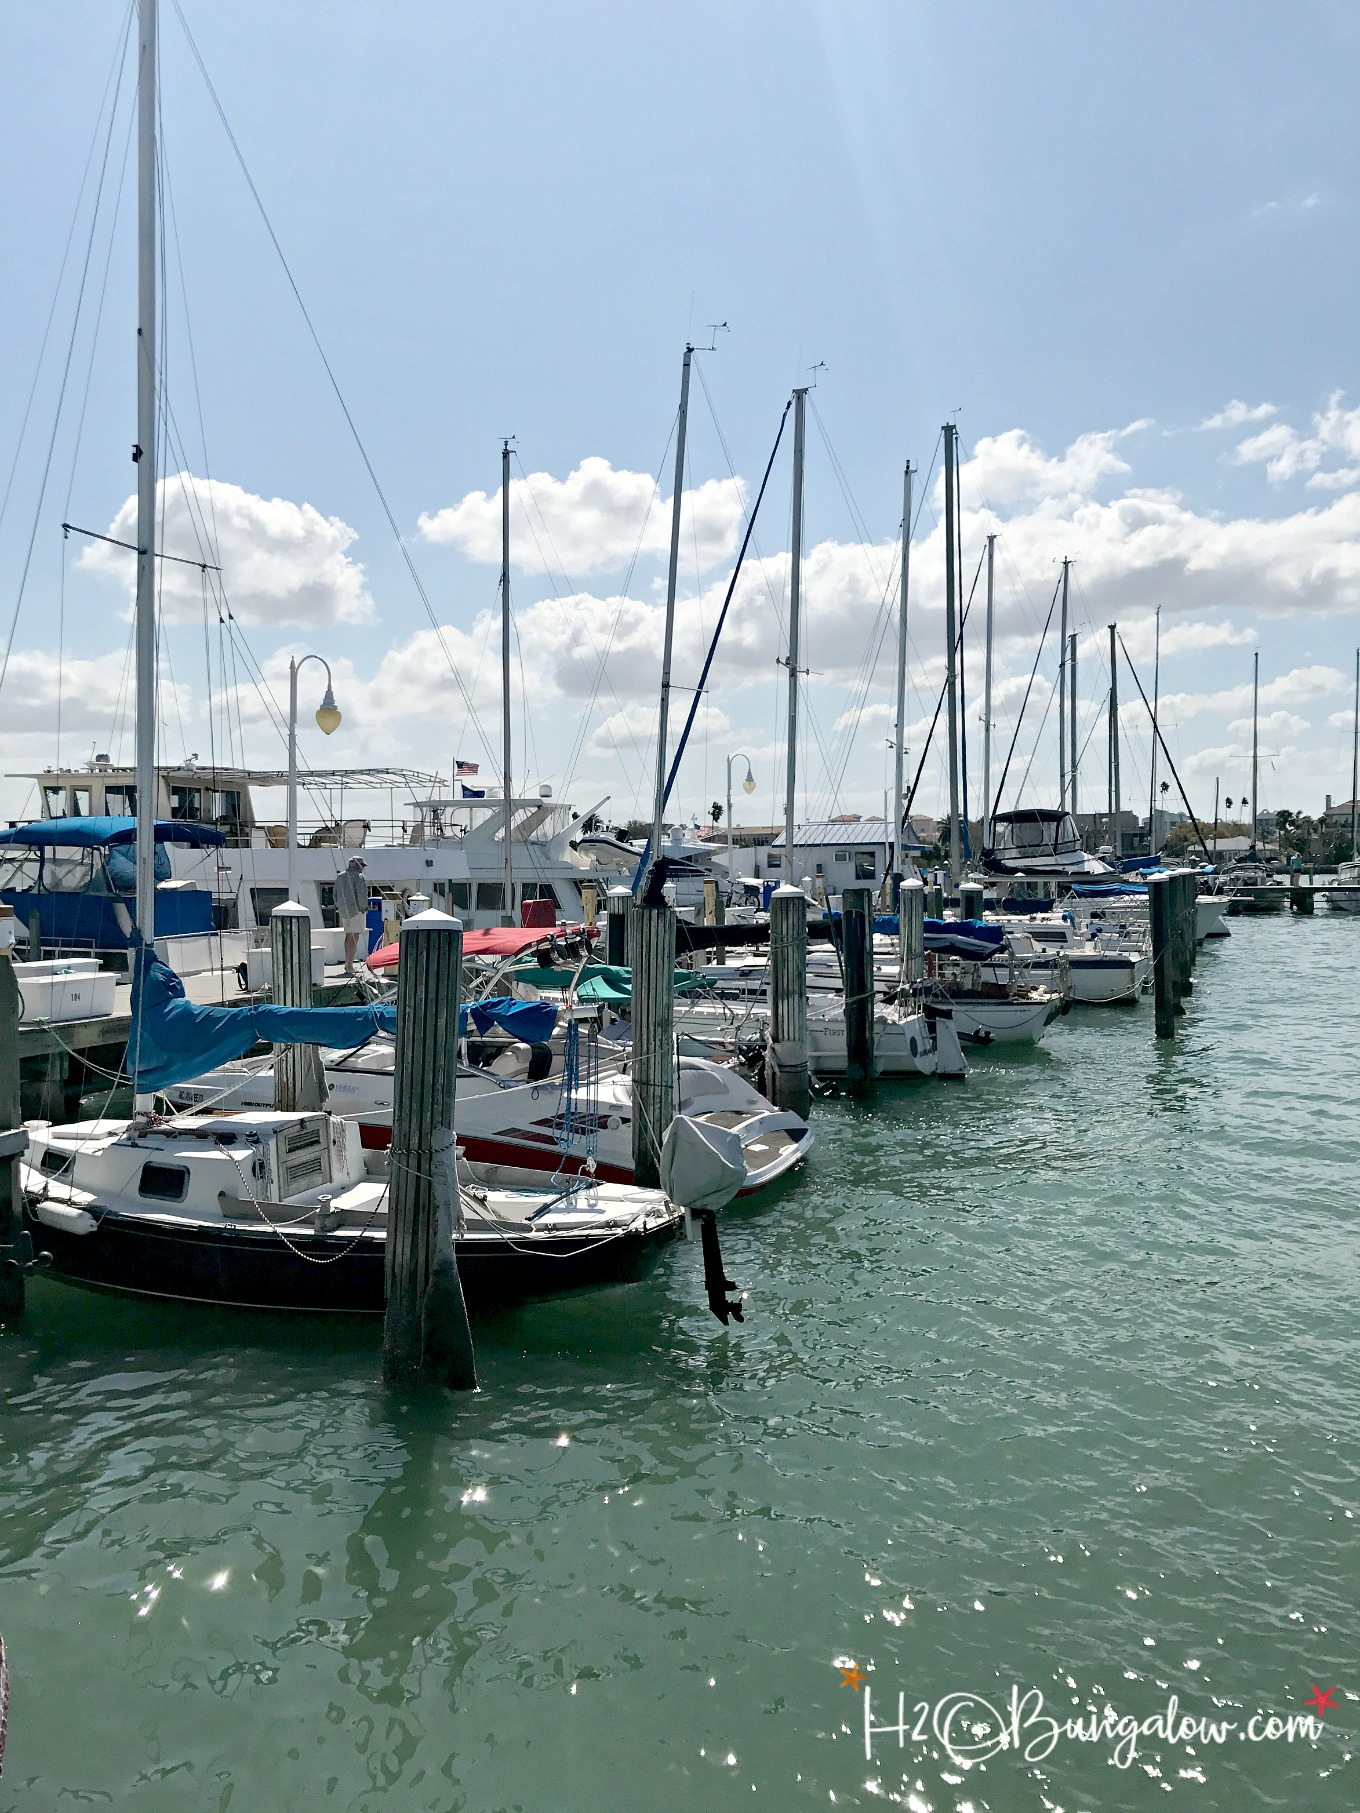 Rough seas and high winds had us change our plans on a weekend sail but we still had fun Visiting Clearwater Fl by boat and exploring this cute beach town.